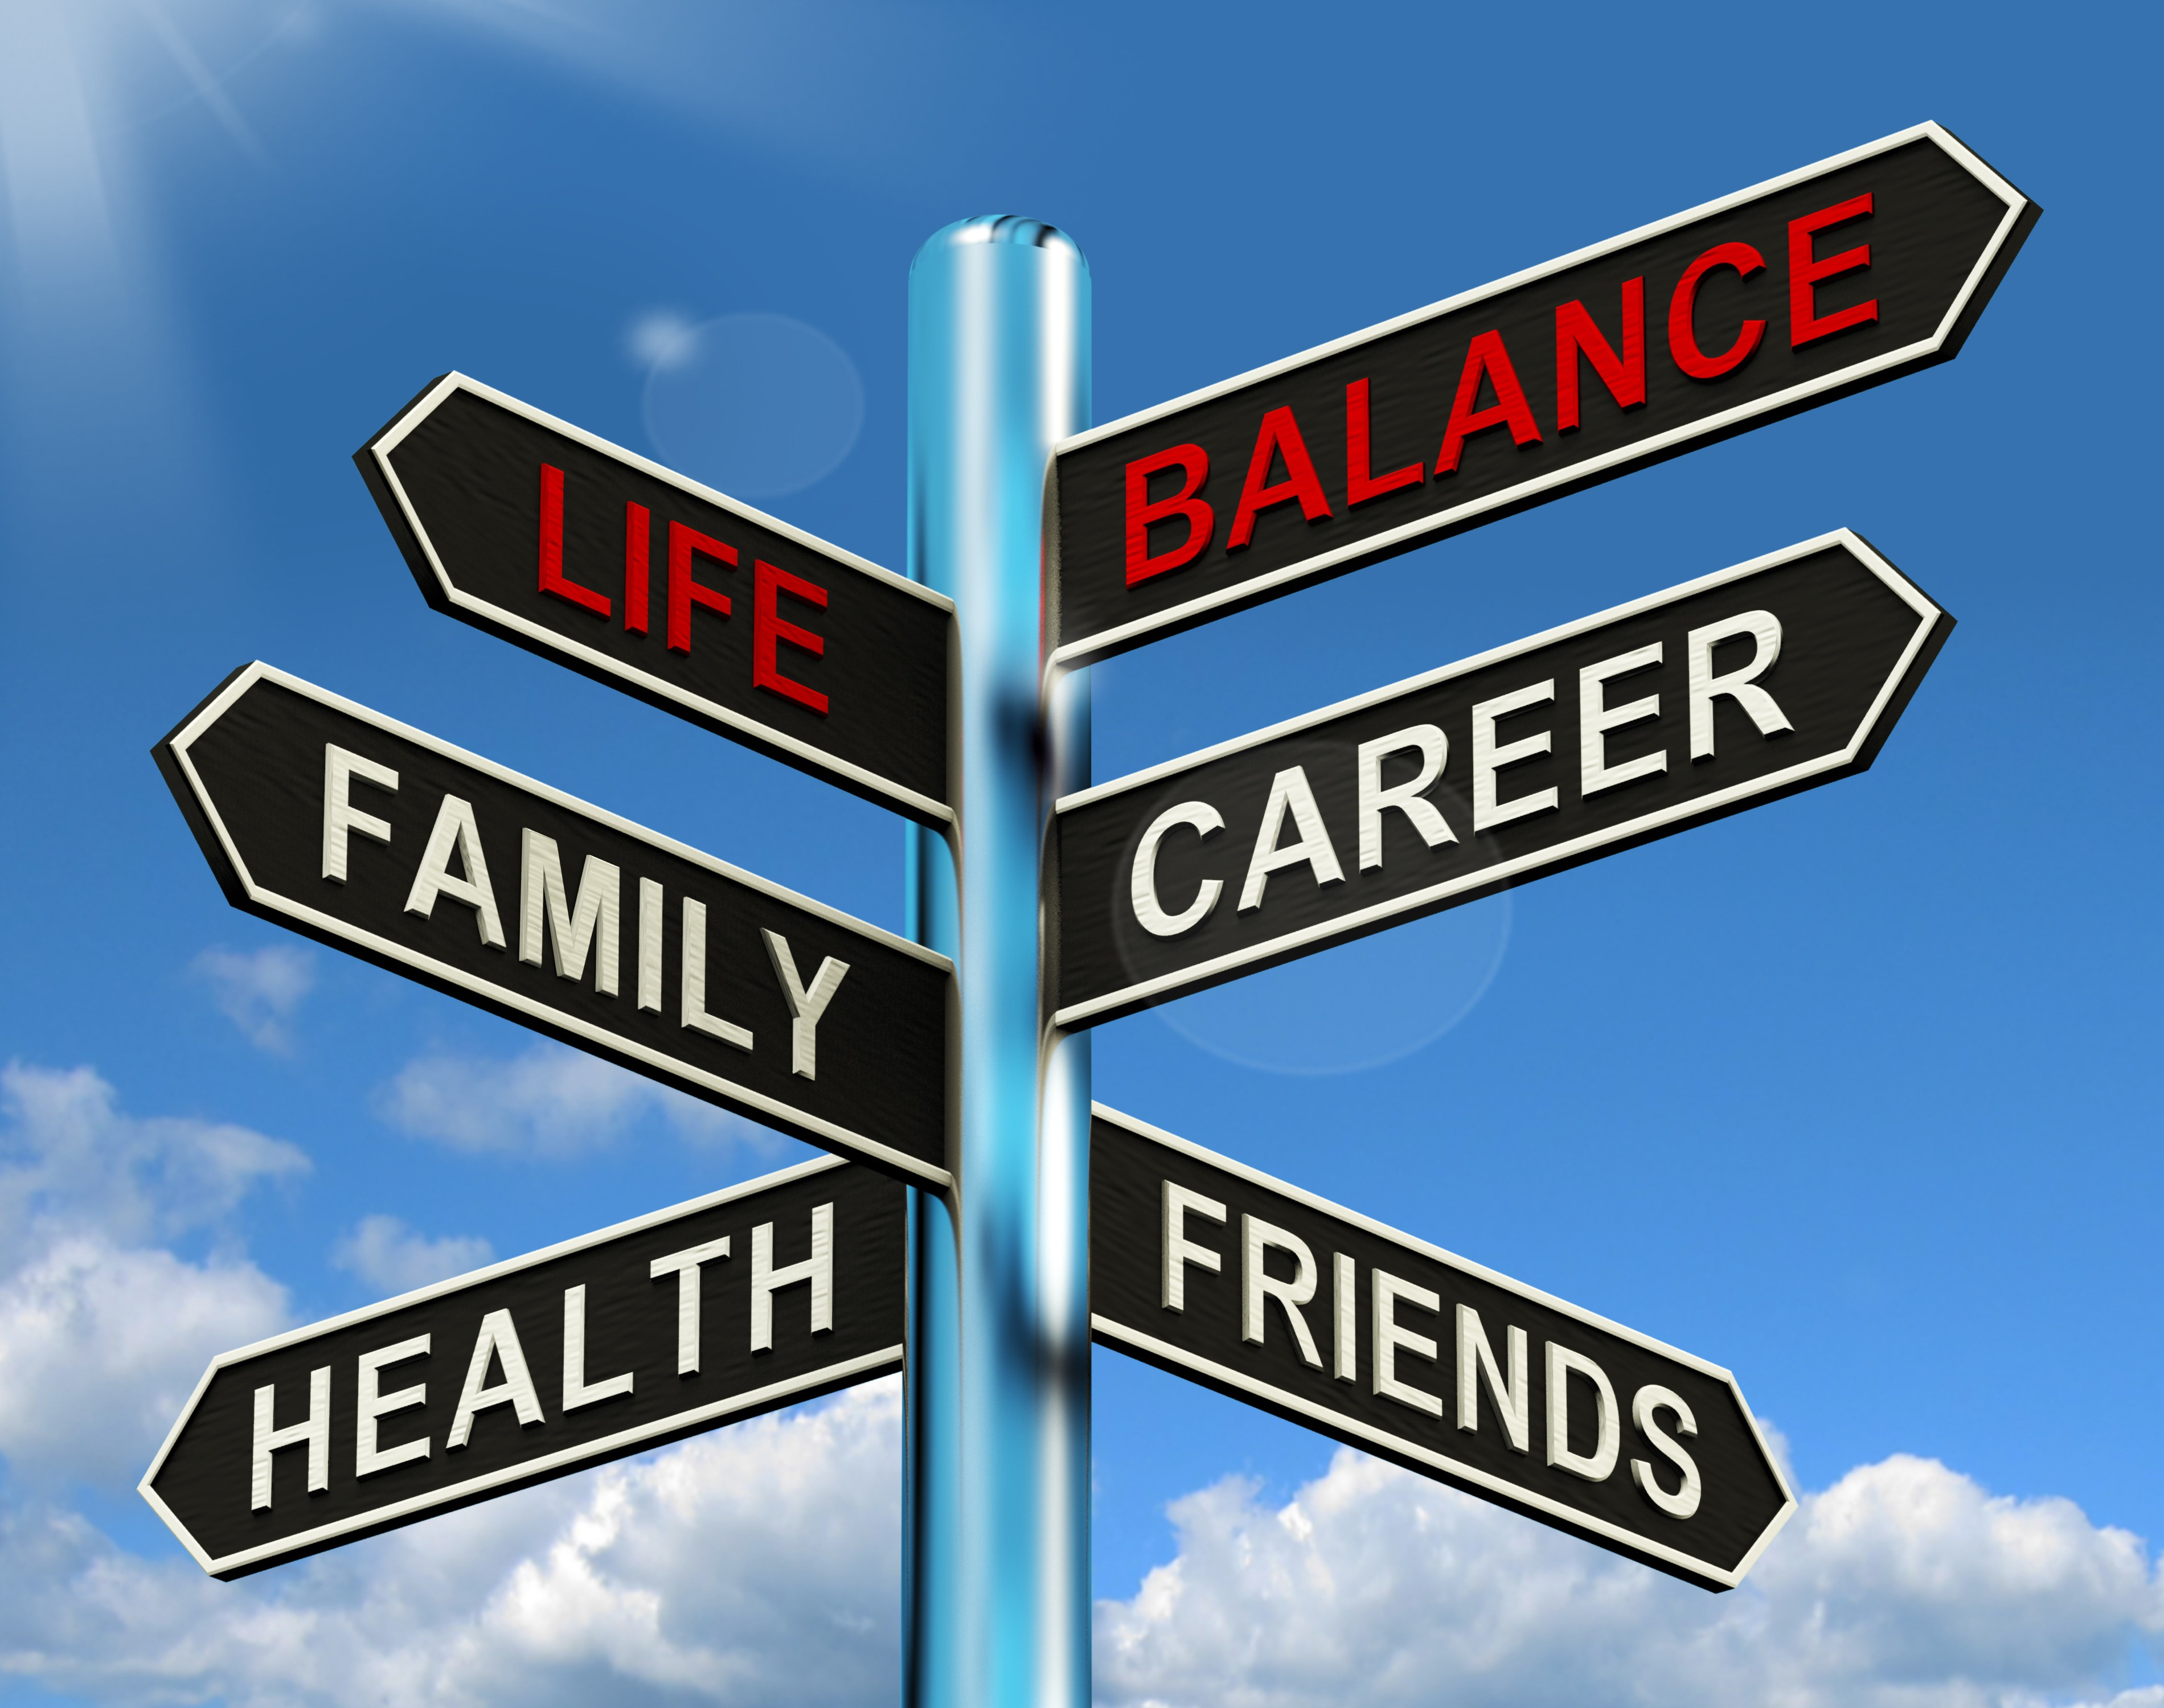 life-balance-signpost-shows-family-career-health-and-friends_zJYbwzwd